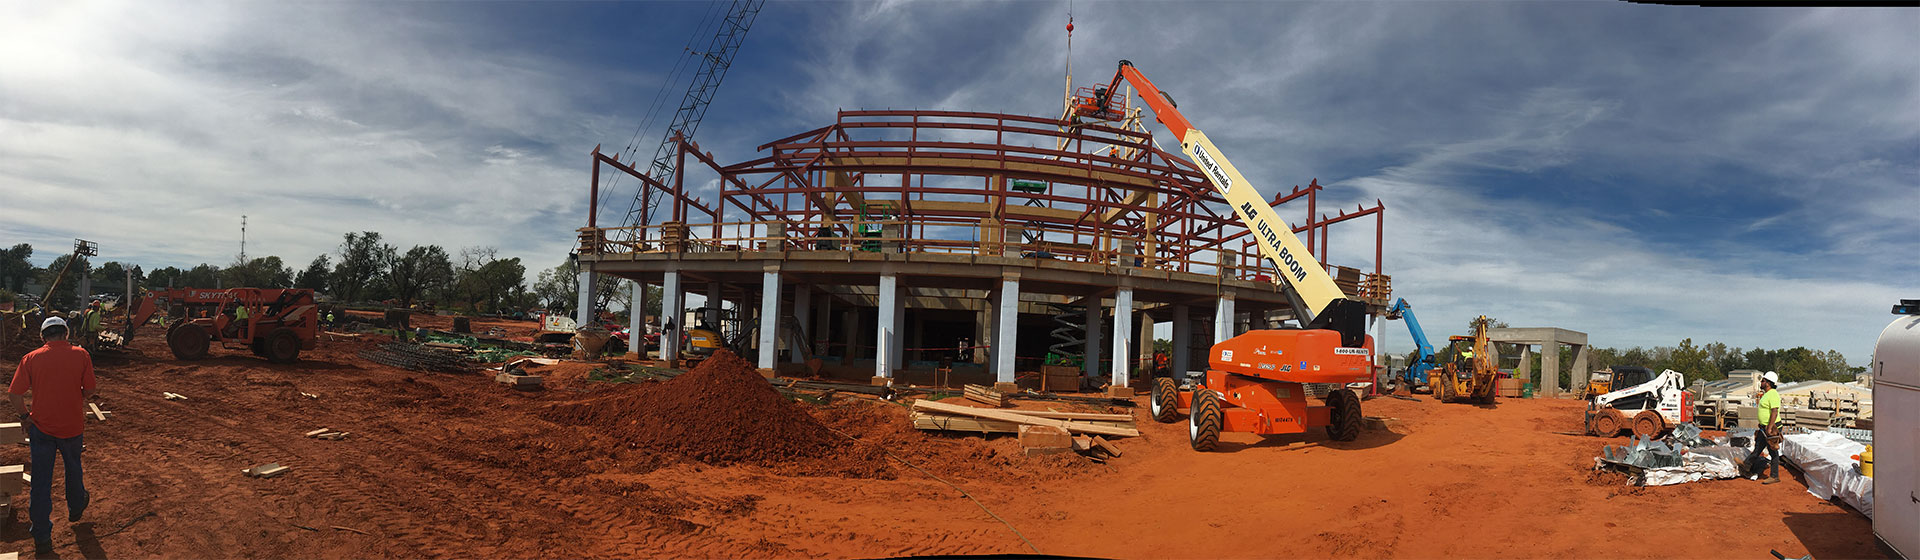 panoramic shot of construction